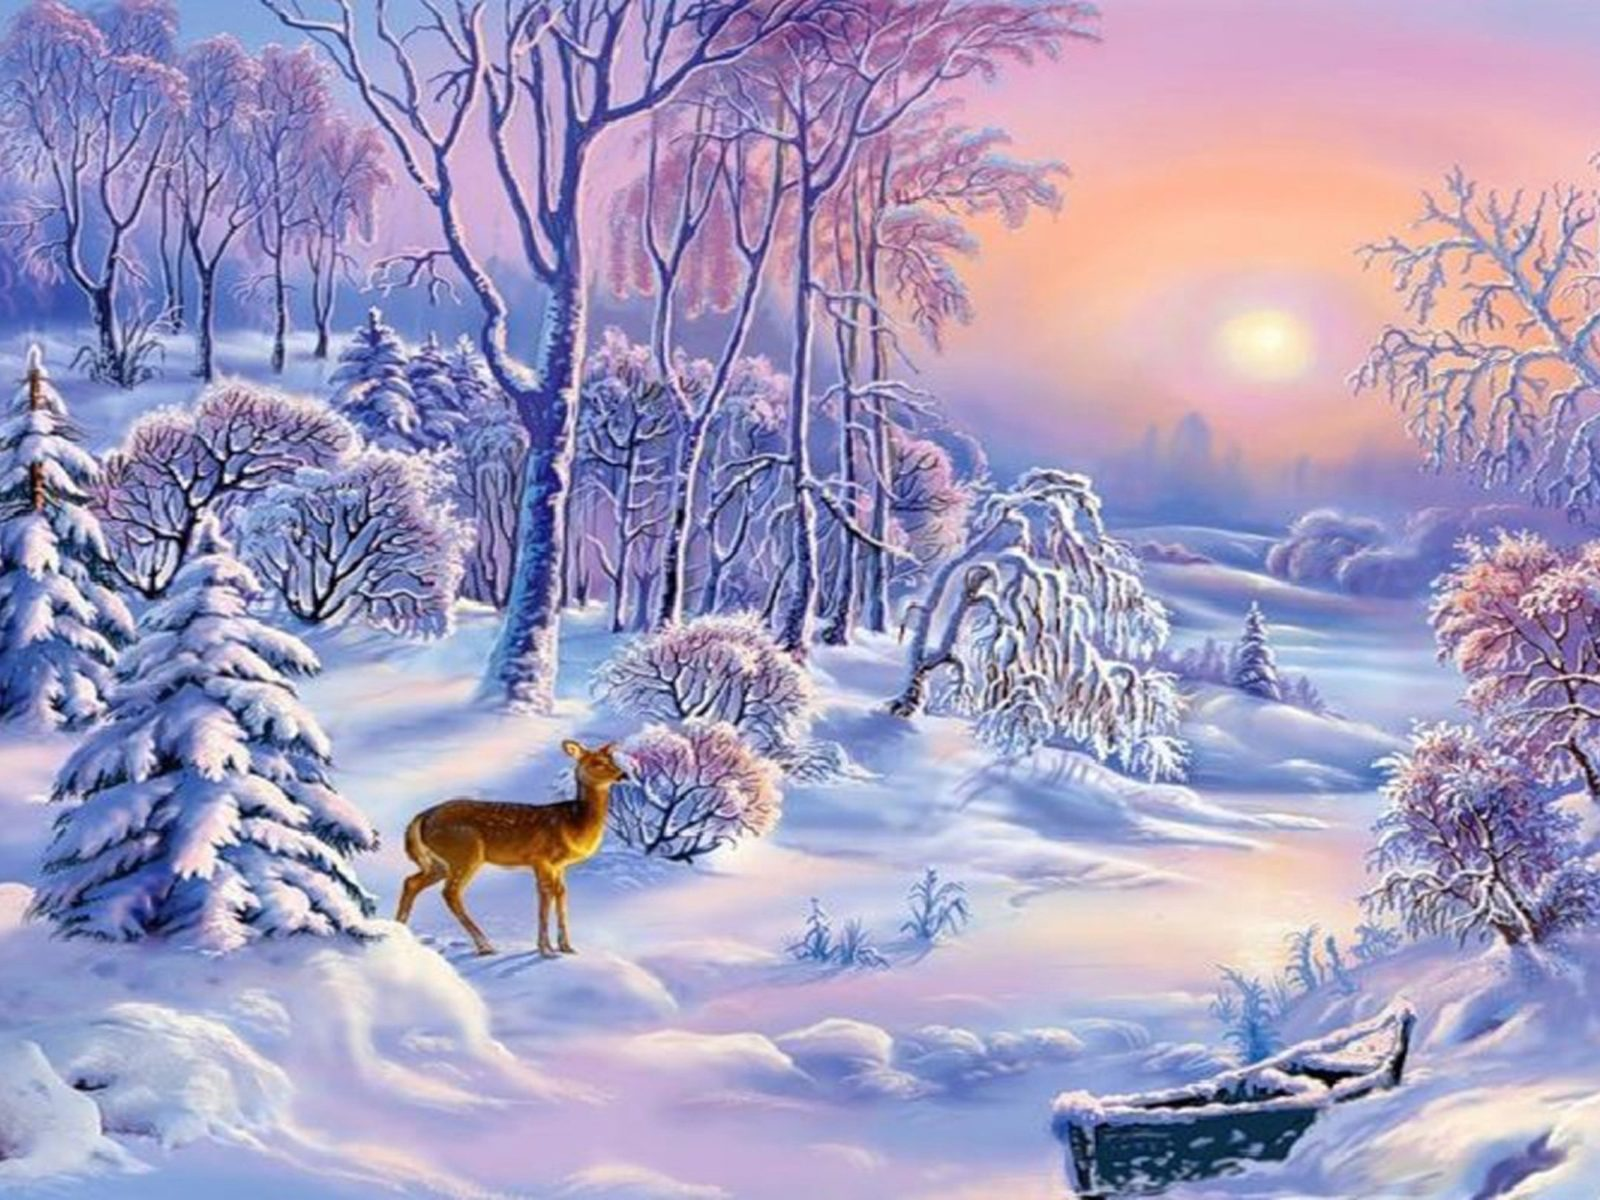 Beautiful Girl Wallpapers High Resolution Landscape Winter Sun Boat Snow Trees Deer